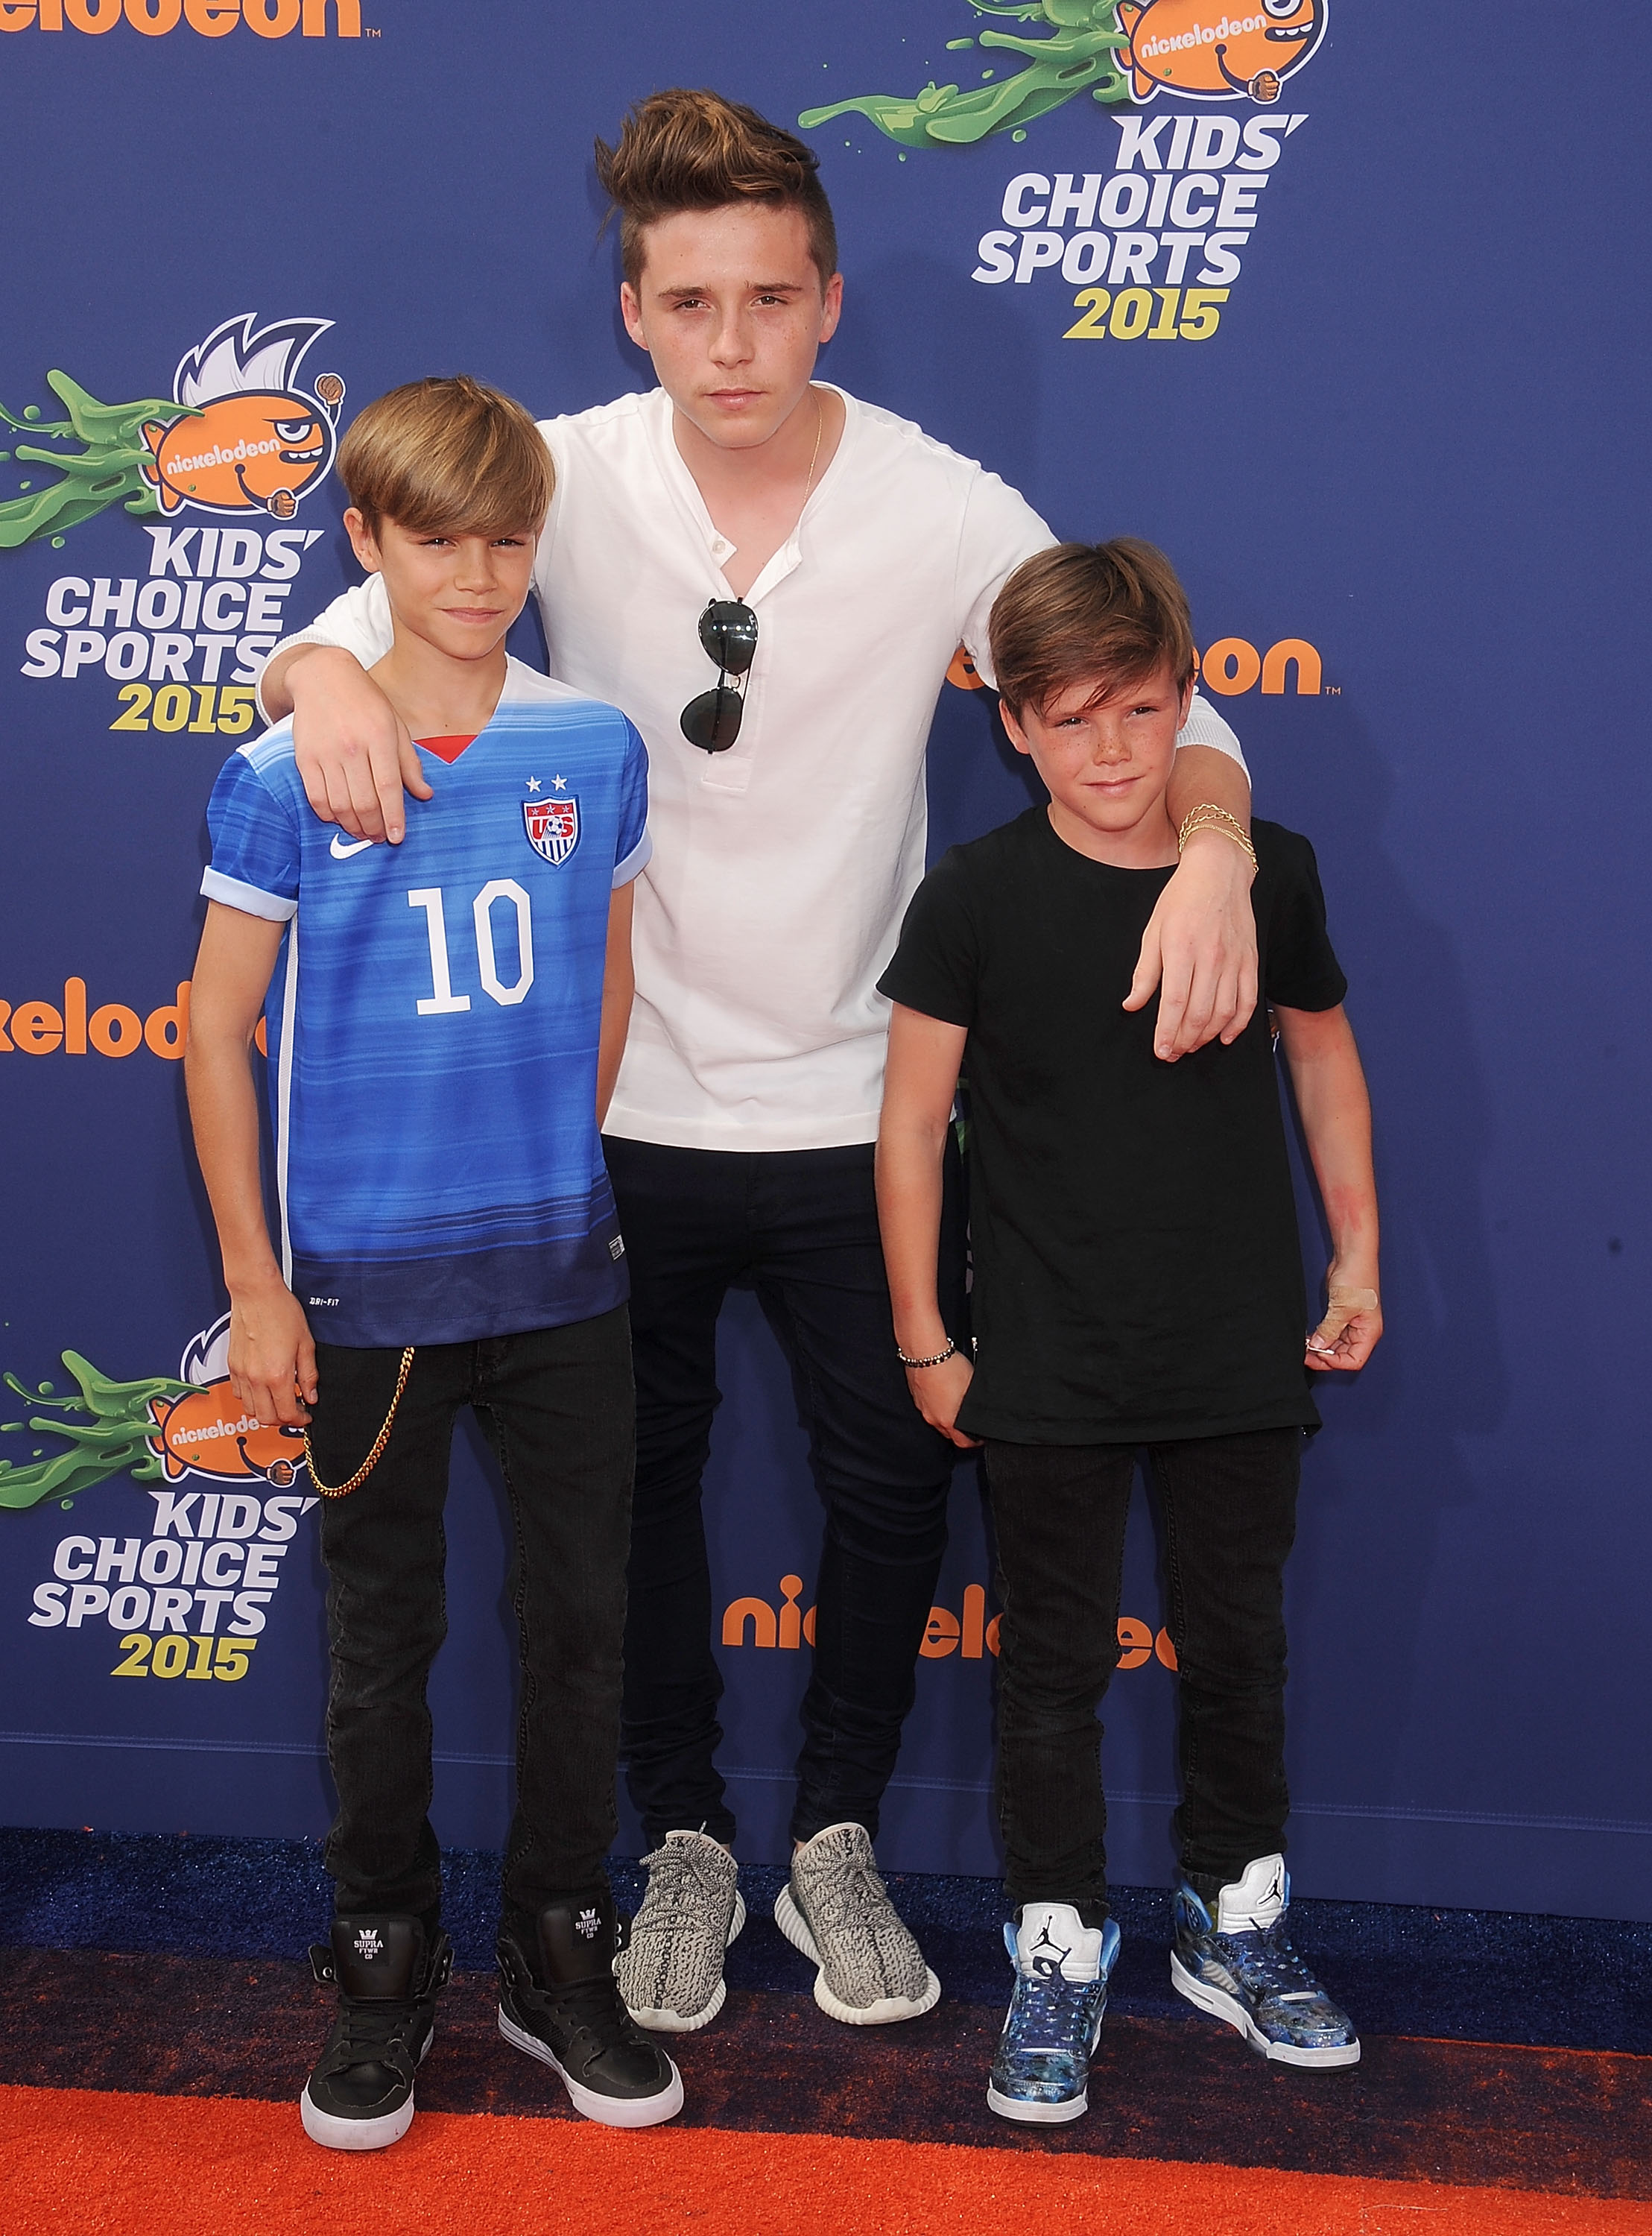 The Beckham Boys Are the Epitome of Cool at the Kids' Choice Sports Awards